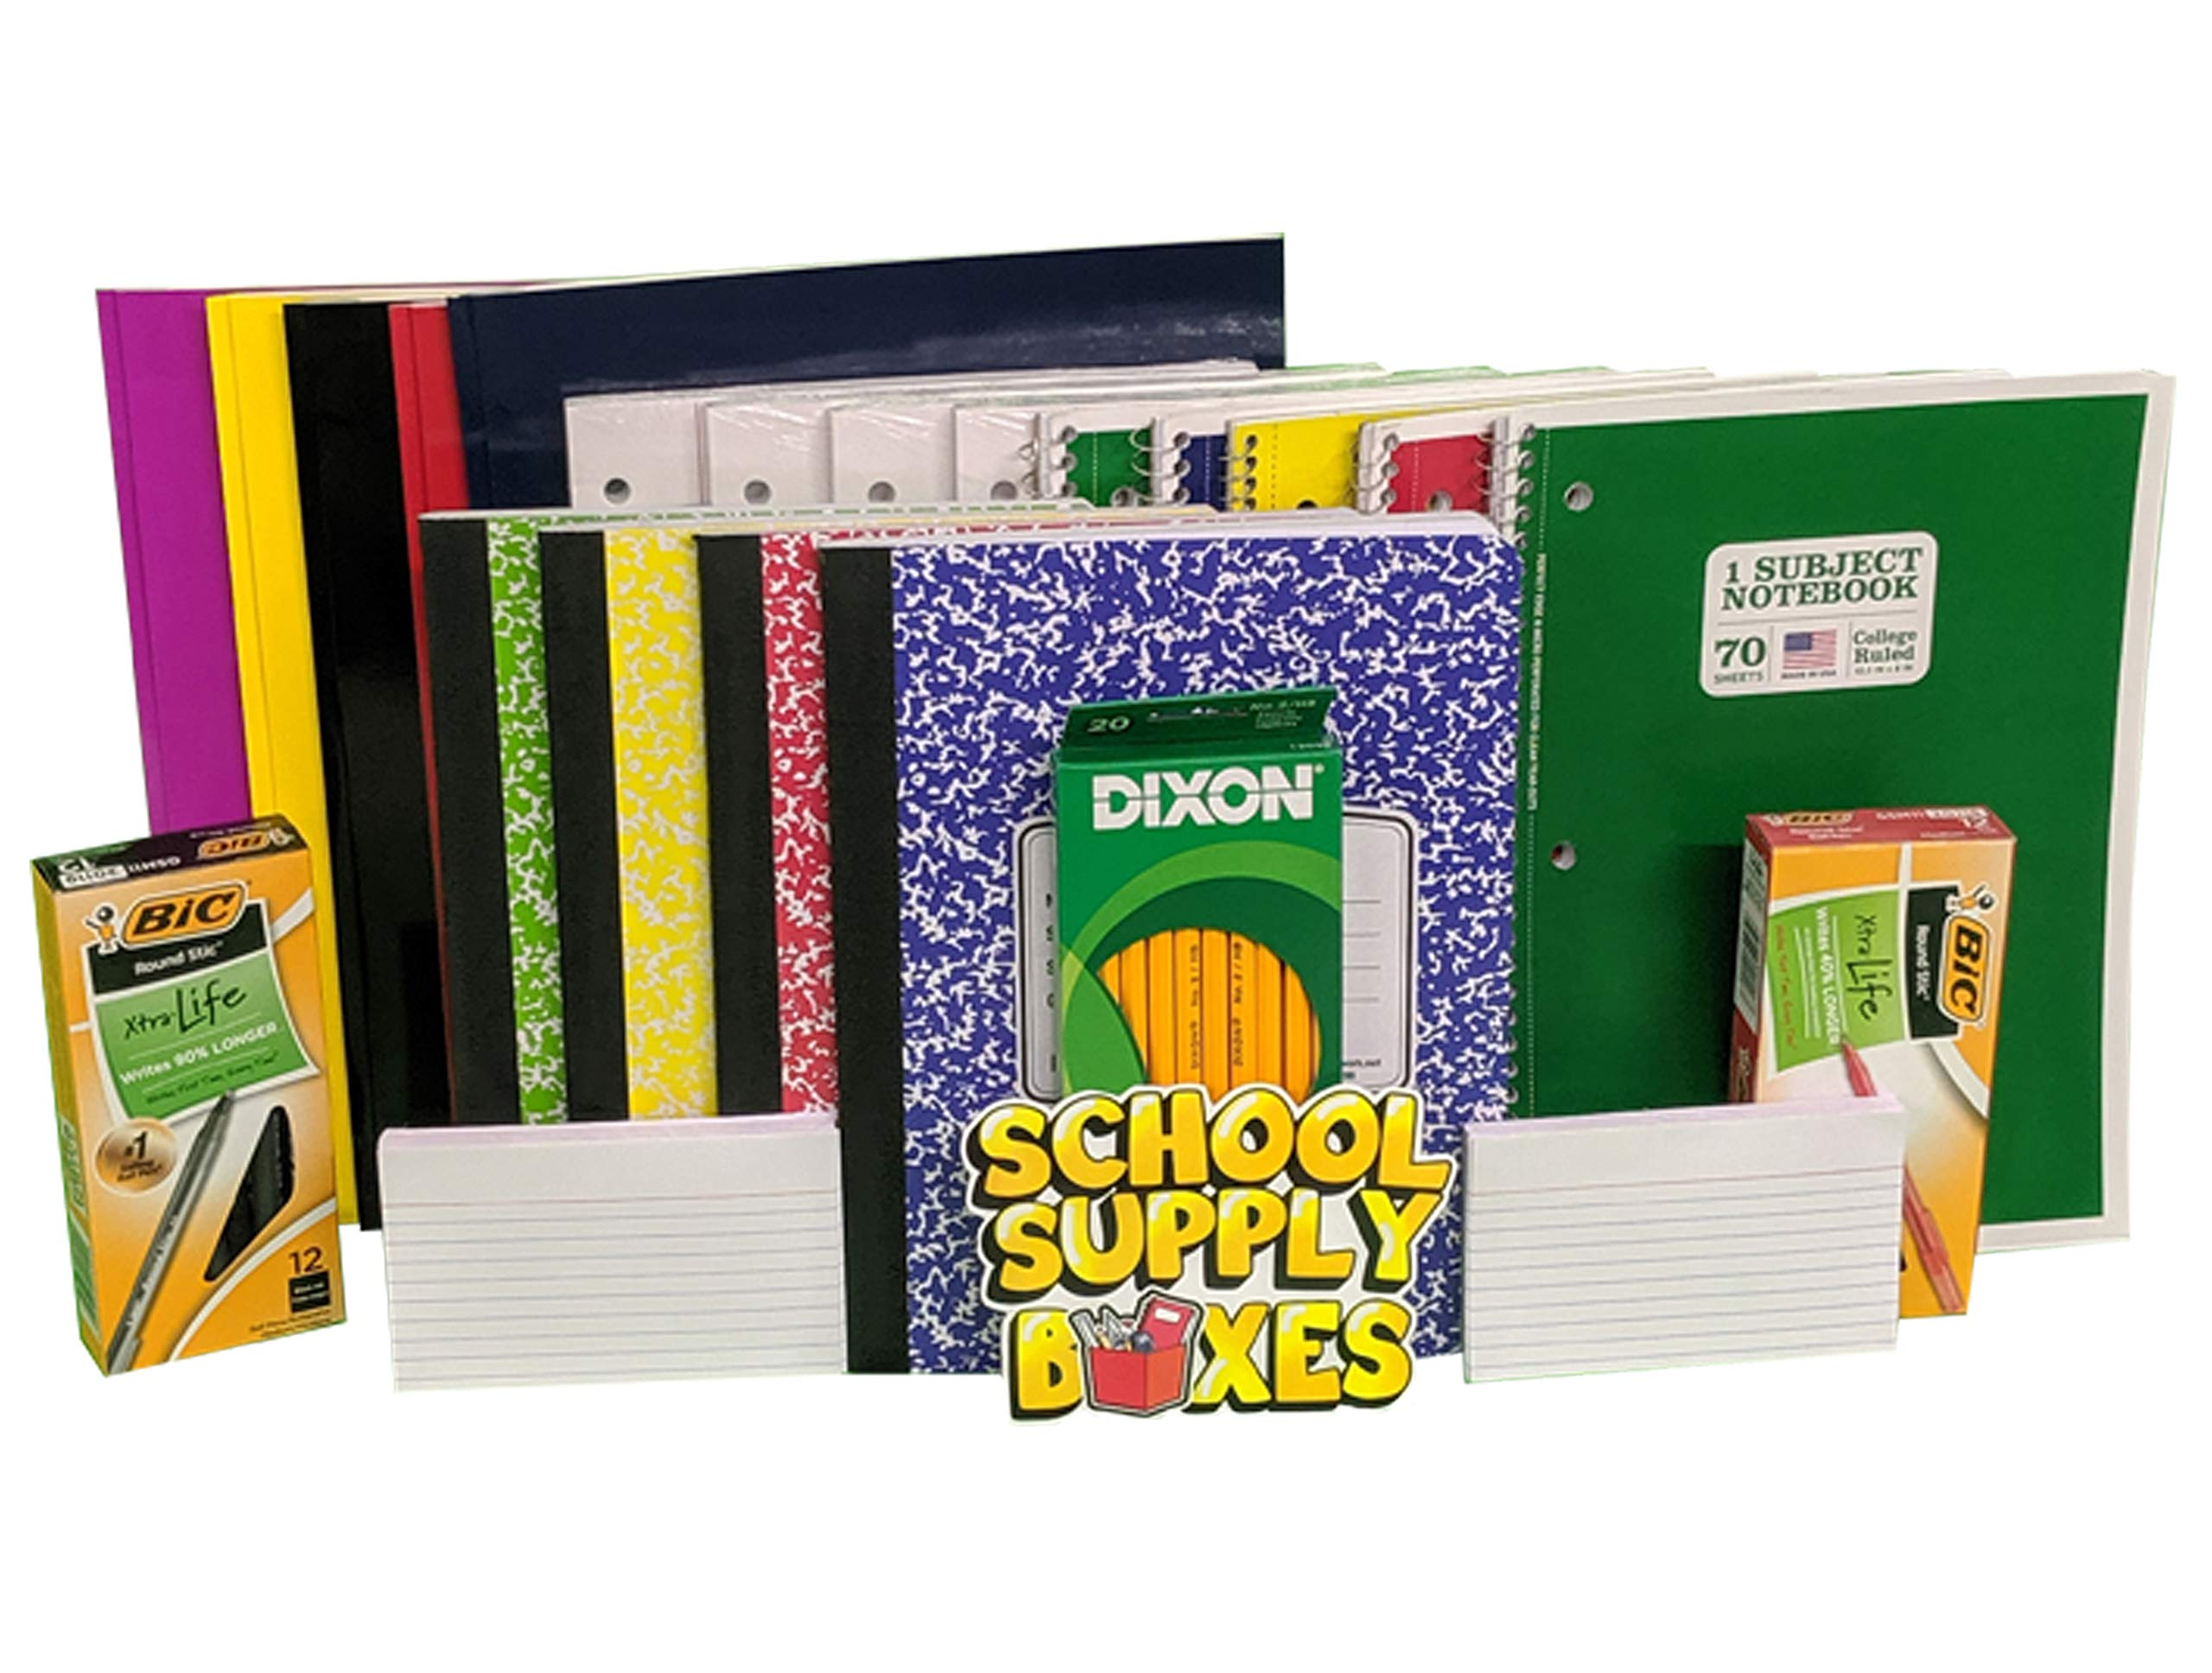 High School Writing Bundle - Back to School Essentials for Elementary Students - Includes Folders, Notebooks, Composition Notebooks, Filler Paper, Index Cards, #2 Pencils, Black Pens, and Red Pens